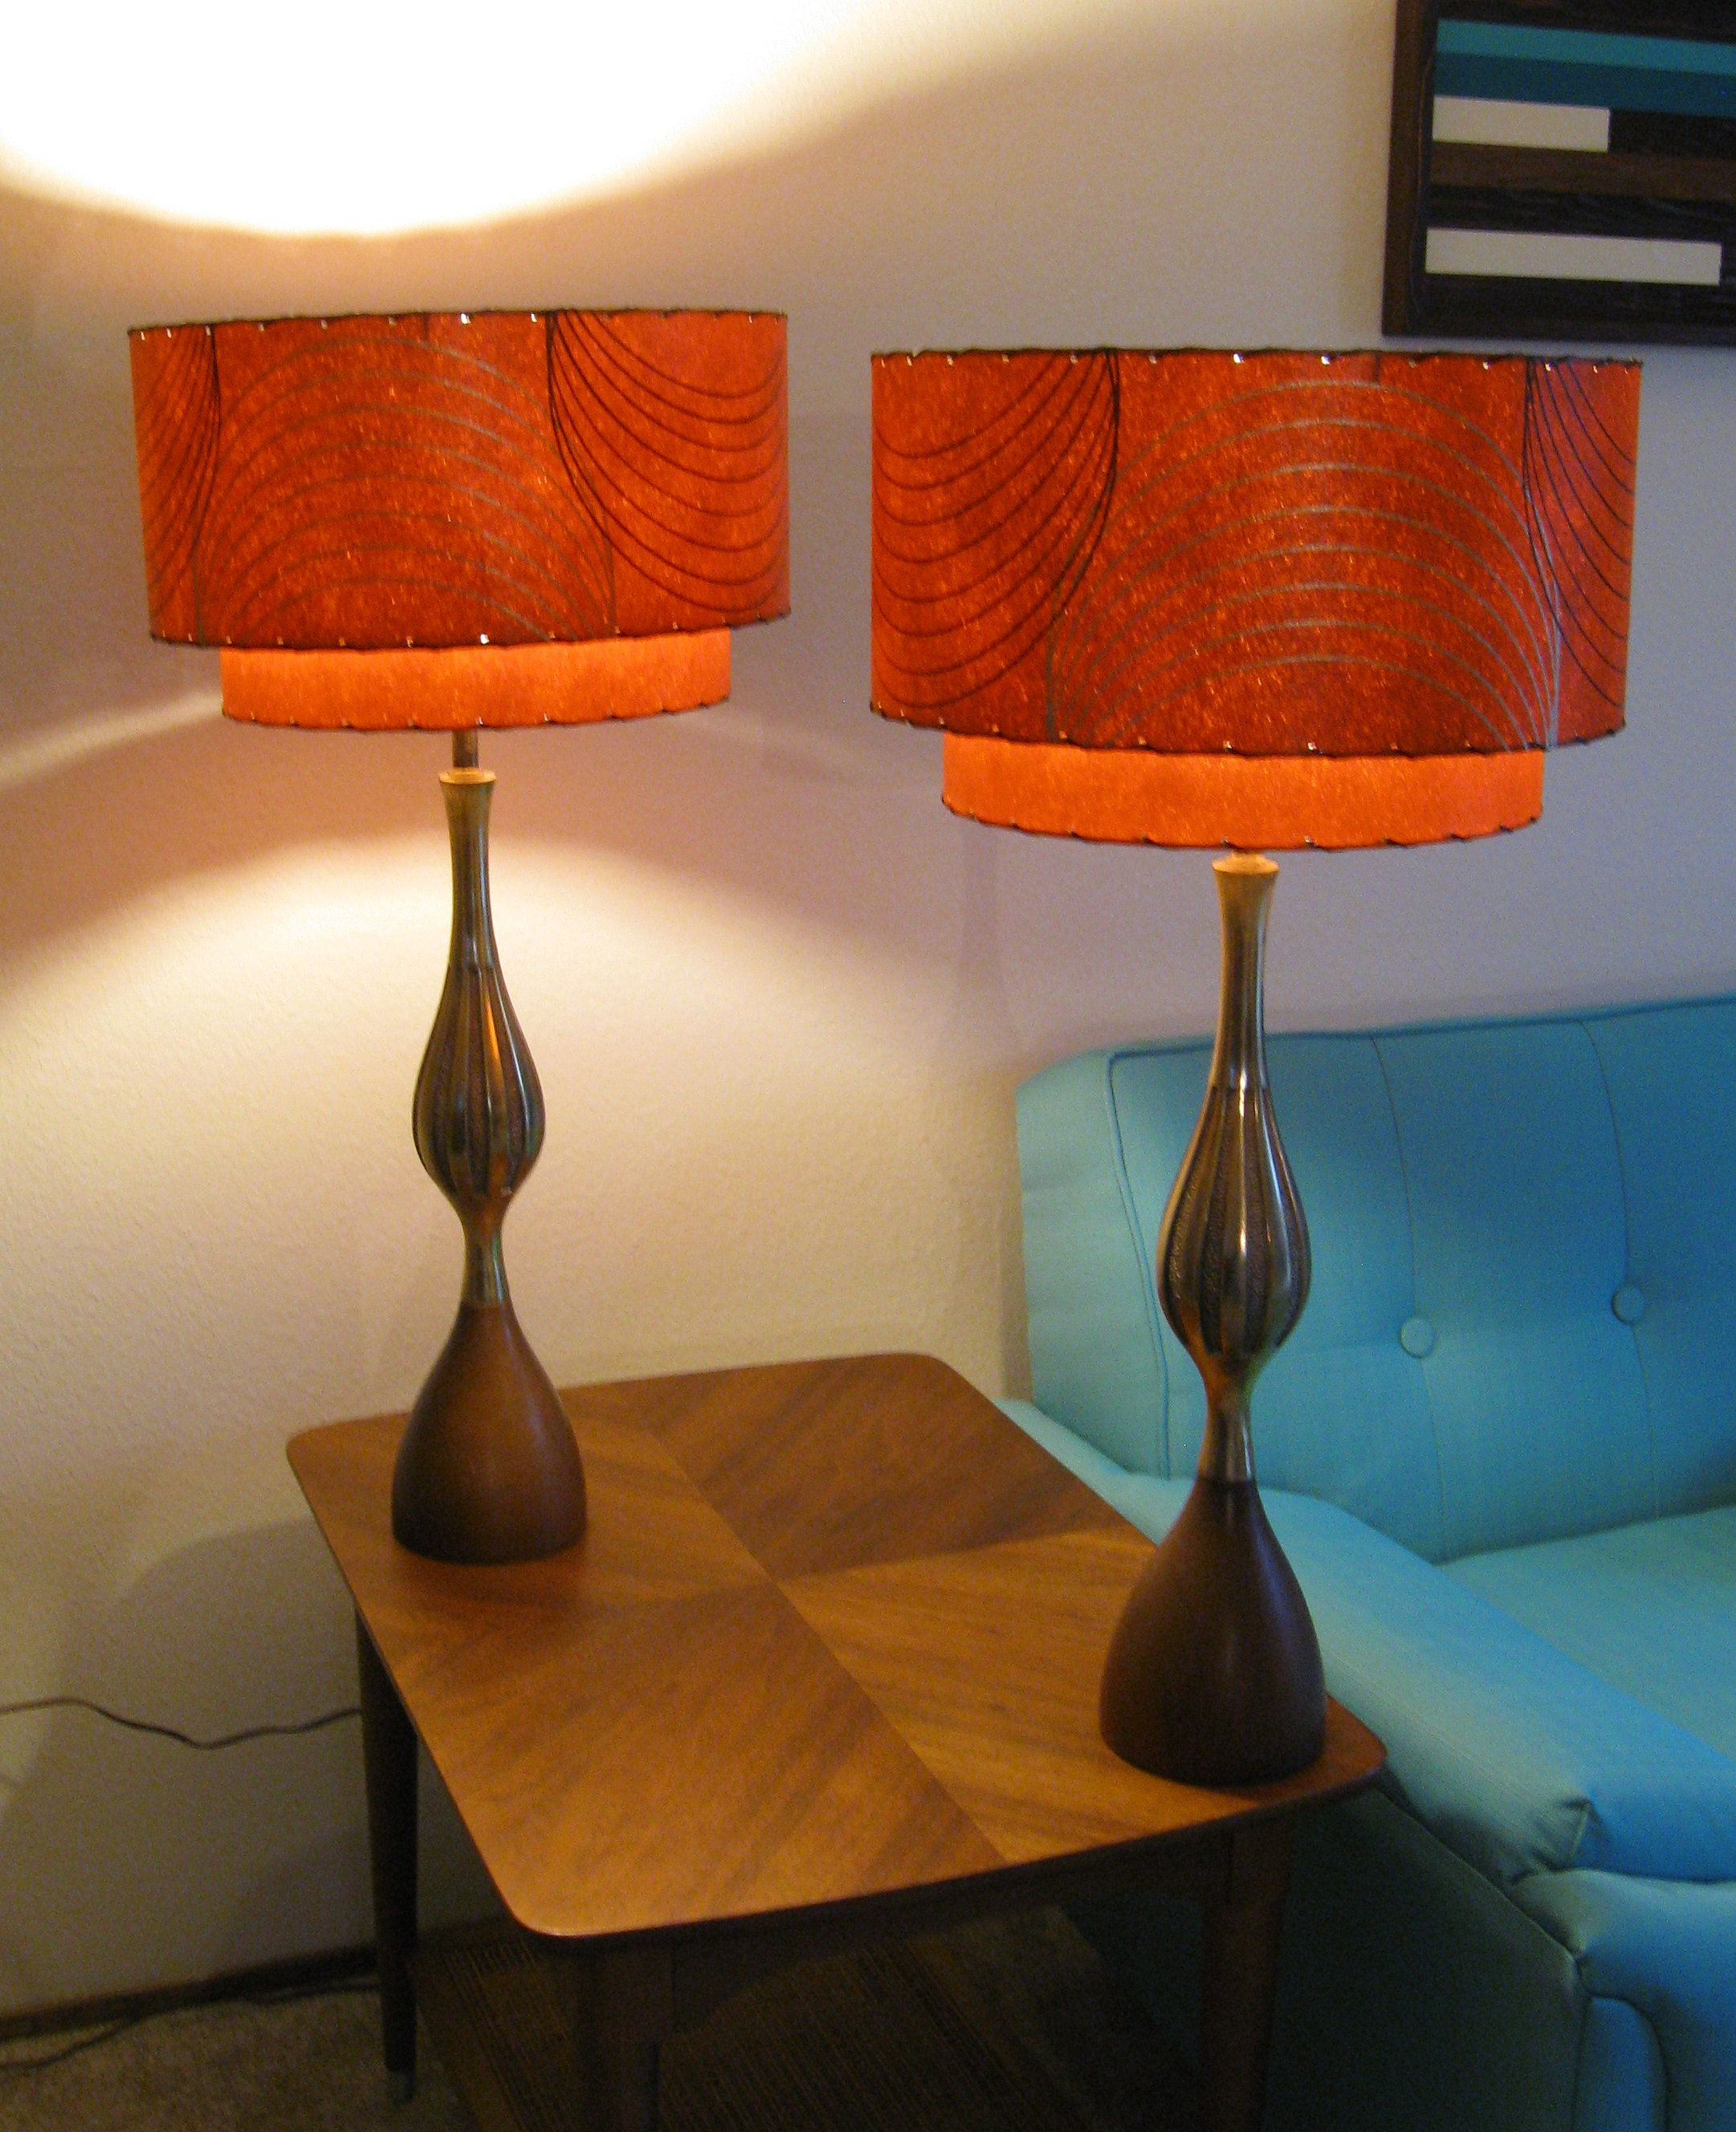 Orange lamp shades - Retromod Design Reproduction Fiberglass Lamp Shades Vintage Fiberglass Lamp Shades Burnt Orange 2 Tier Invert